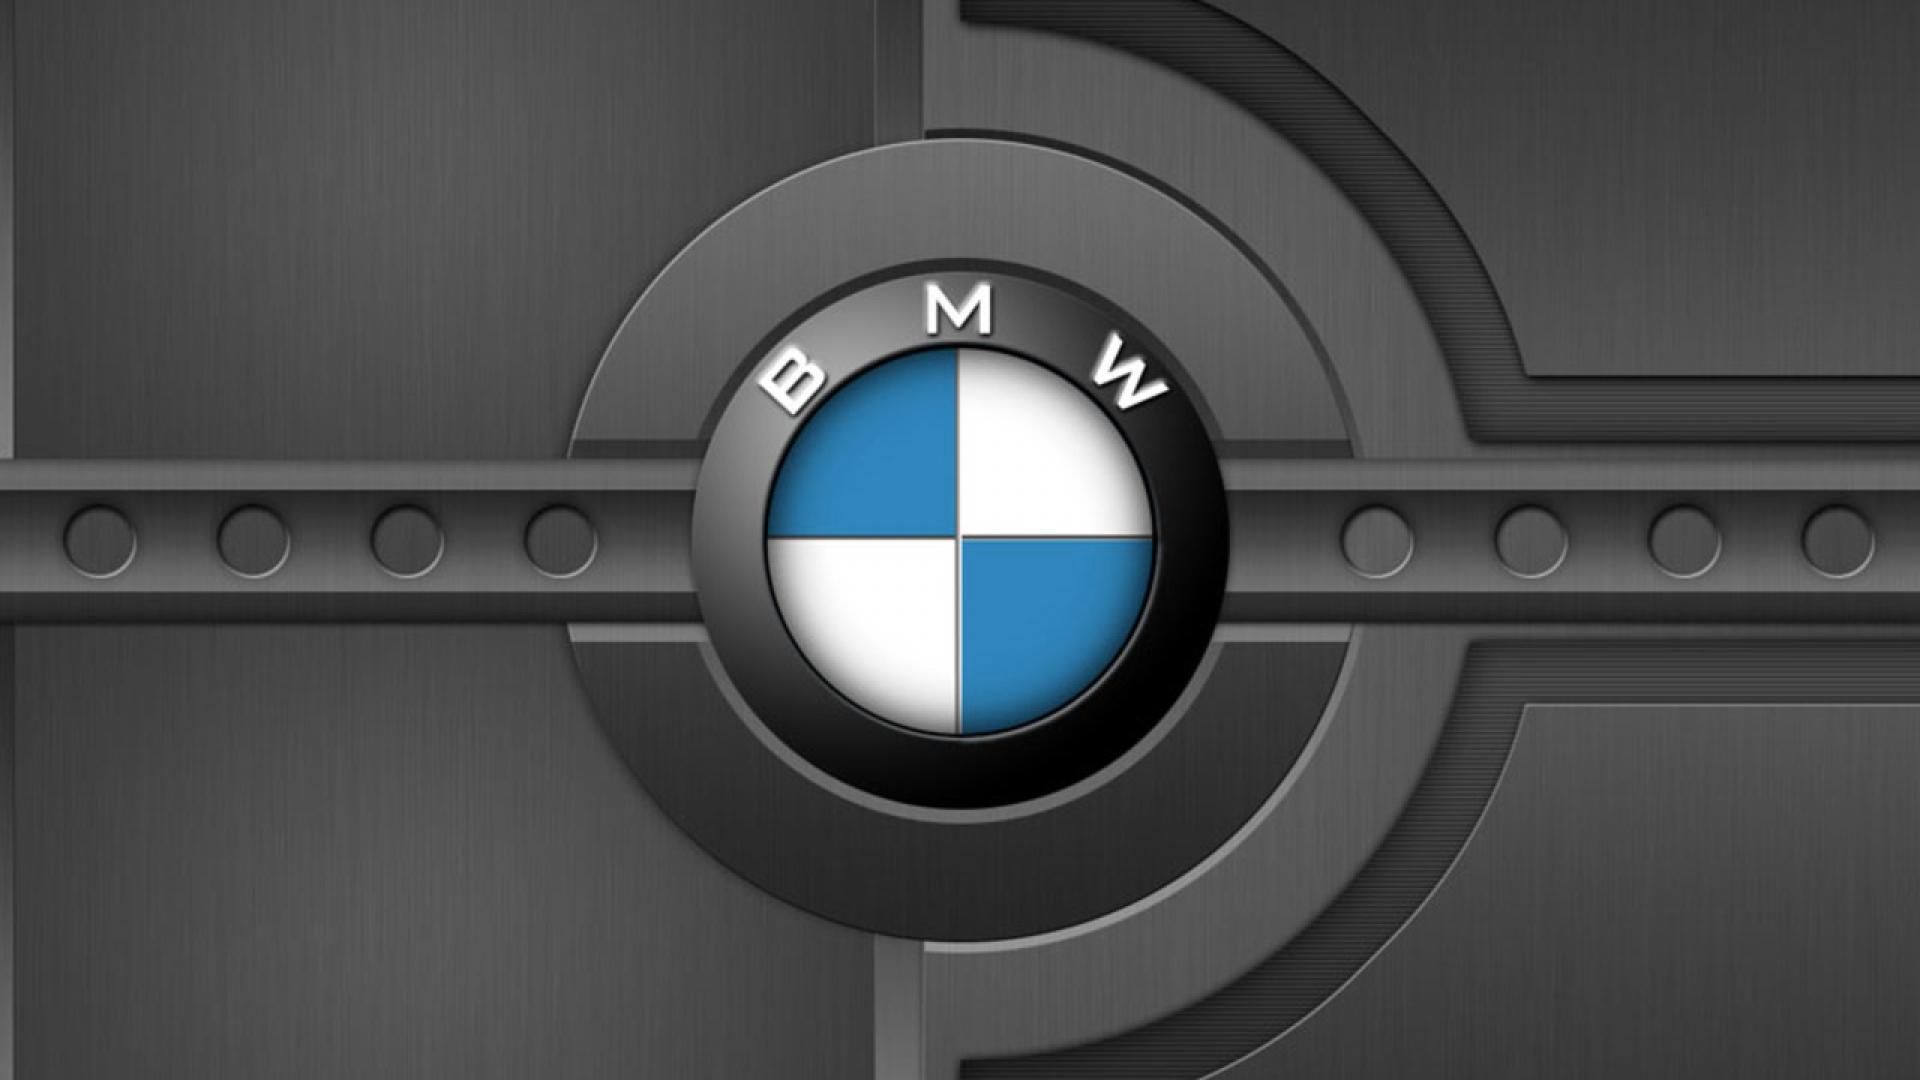 Bmw M Wallpaper Iphone X Bmw Logo Wallpapers Pictures Images